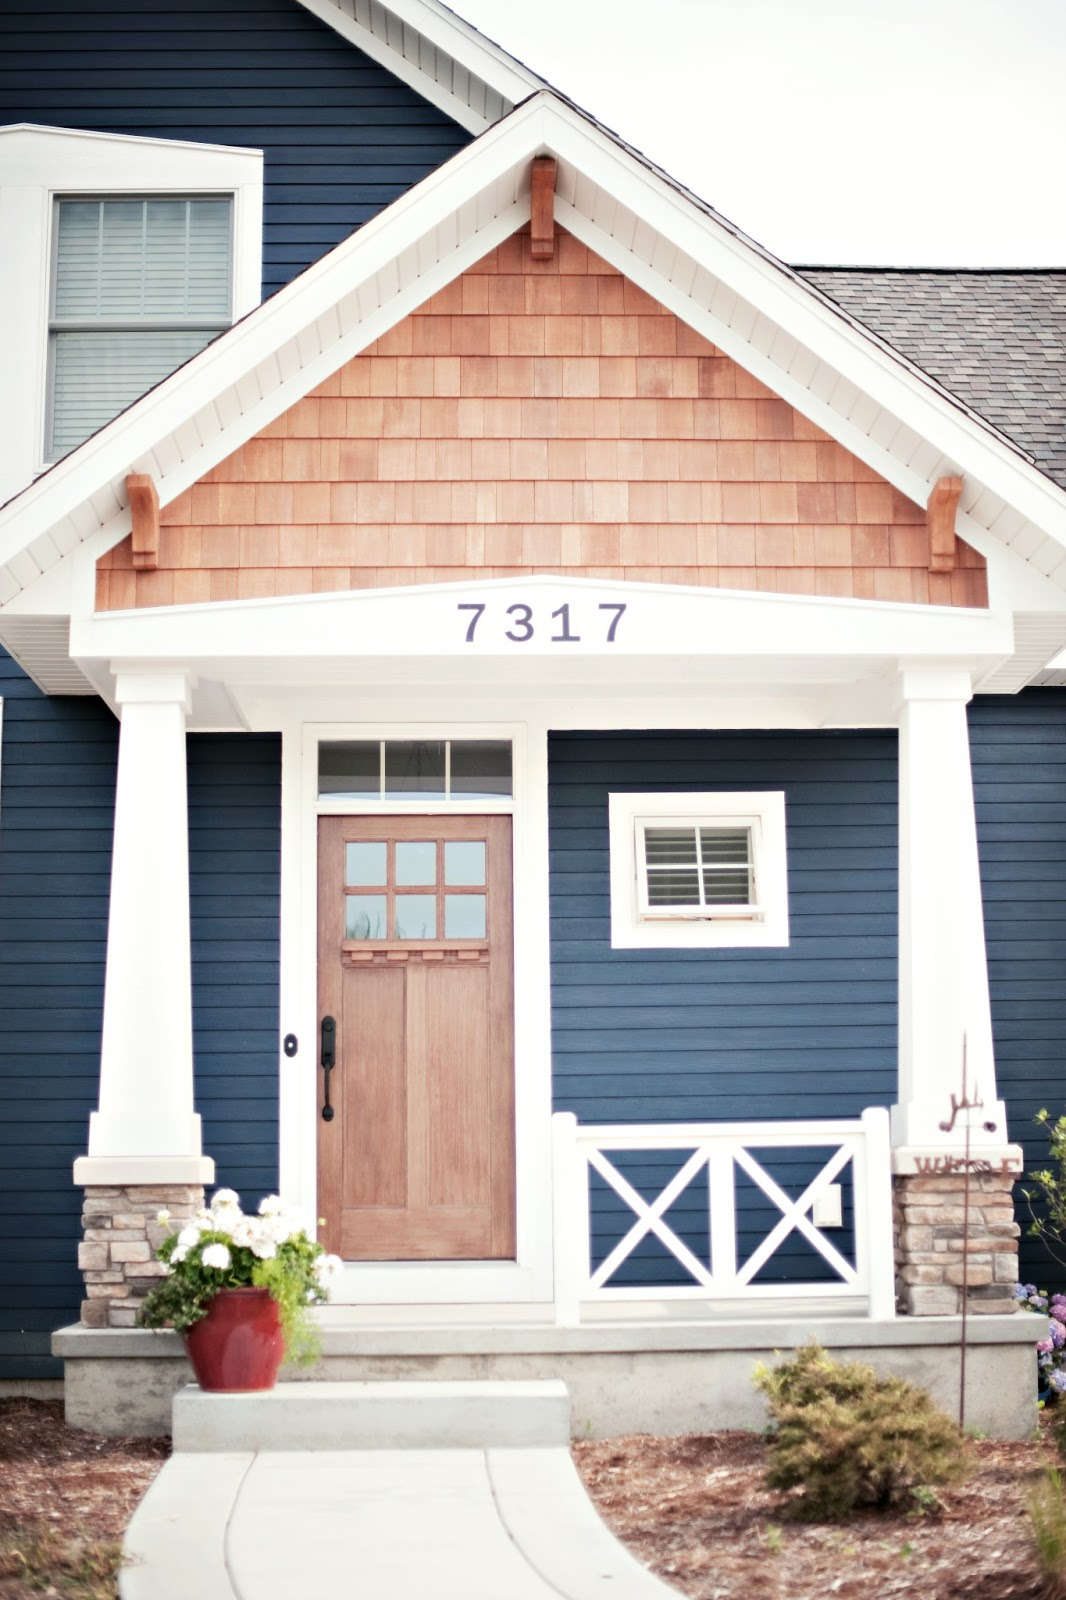 Lisa mende design best navy blue paint colors 8 of my favs for Home exterior paint ideas